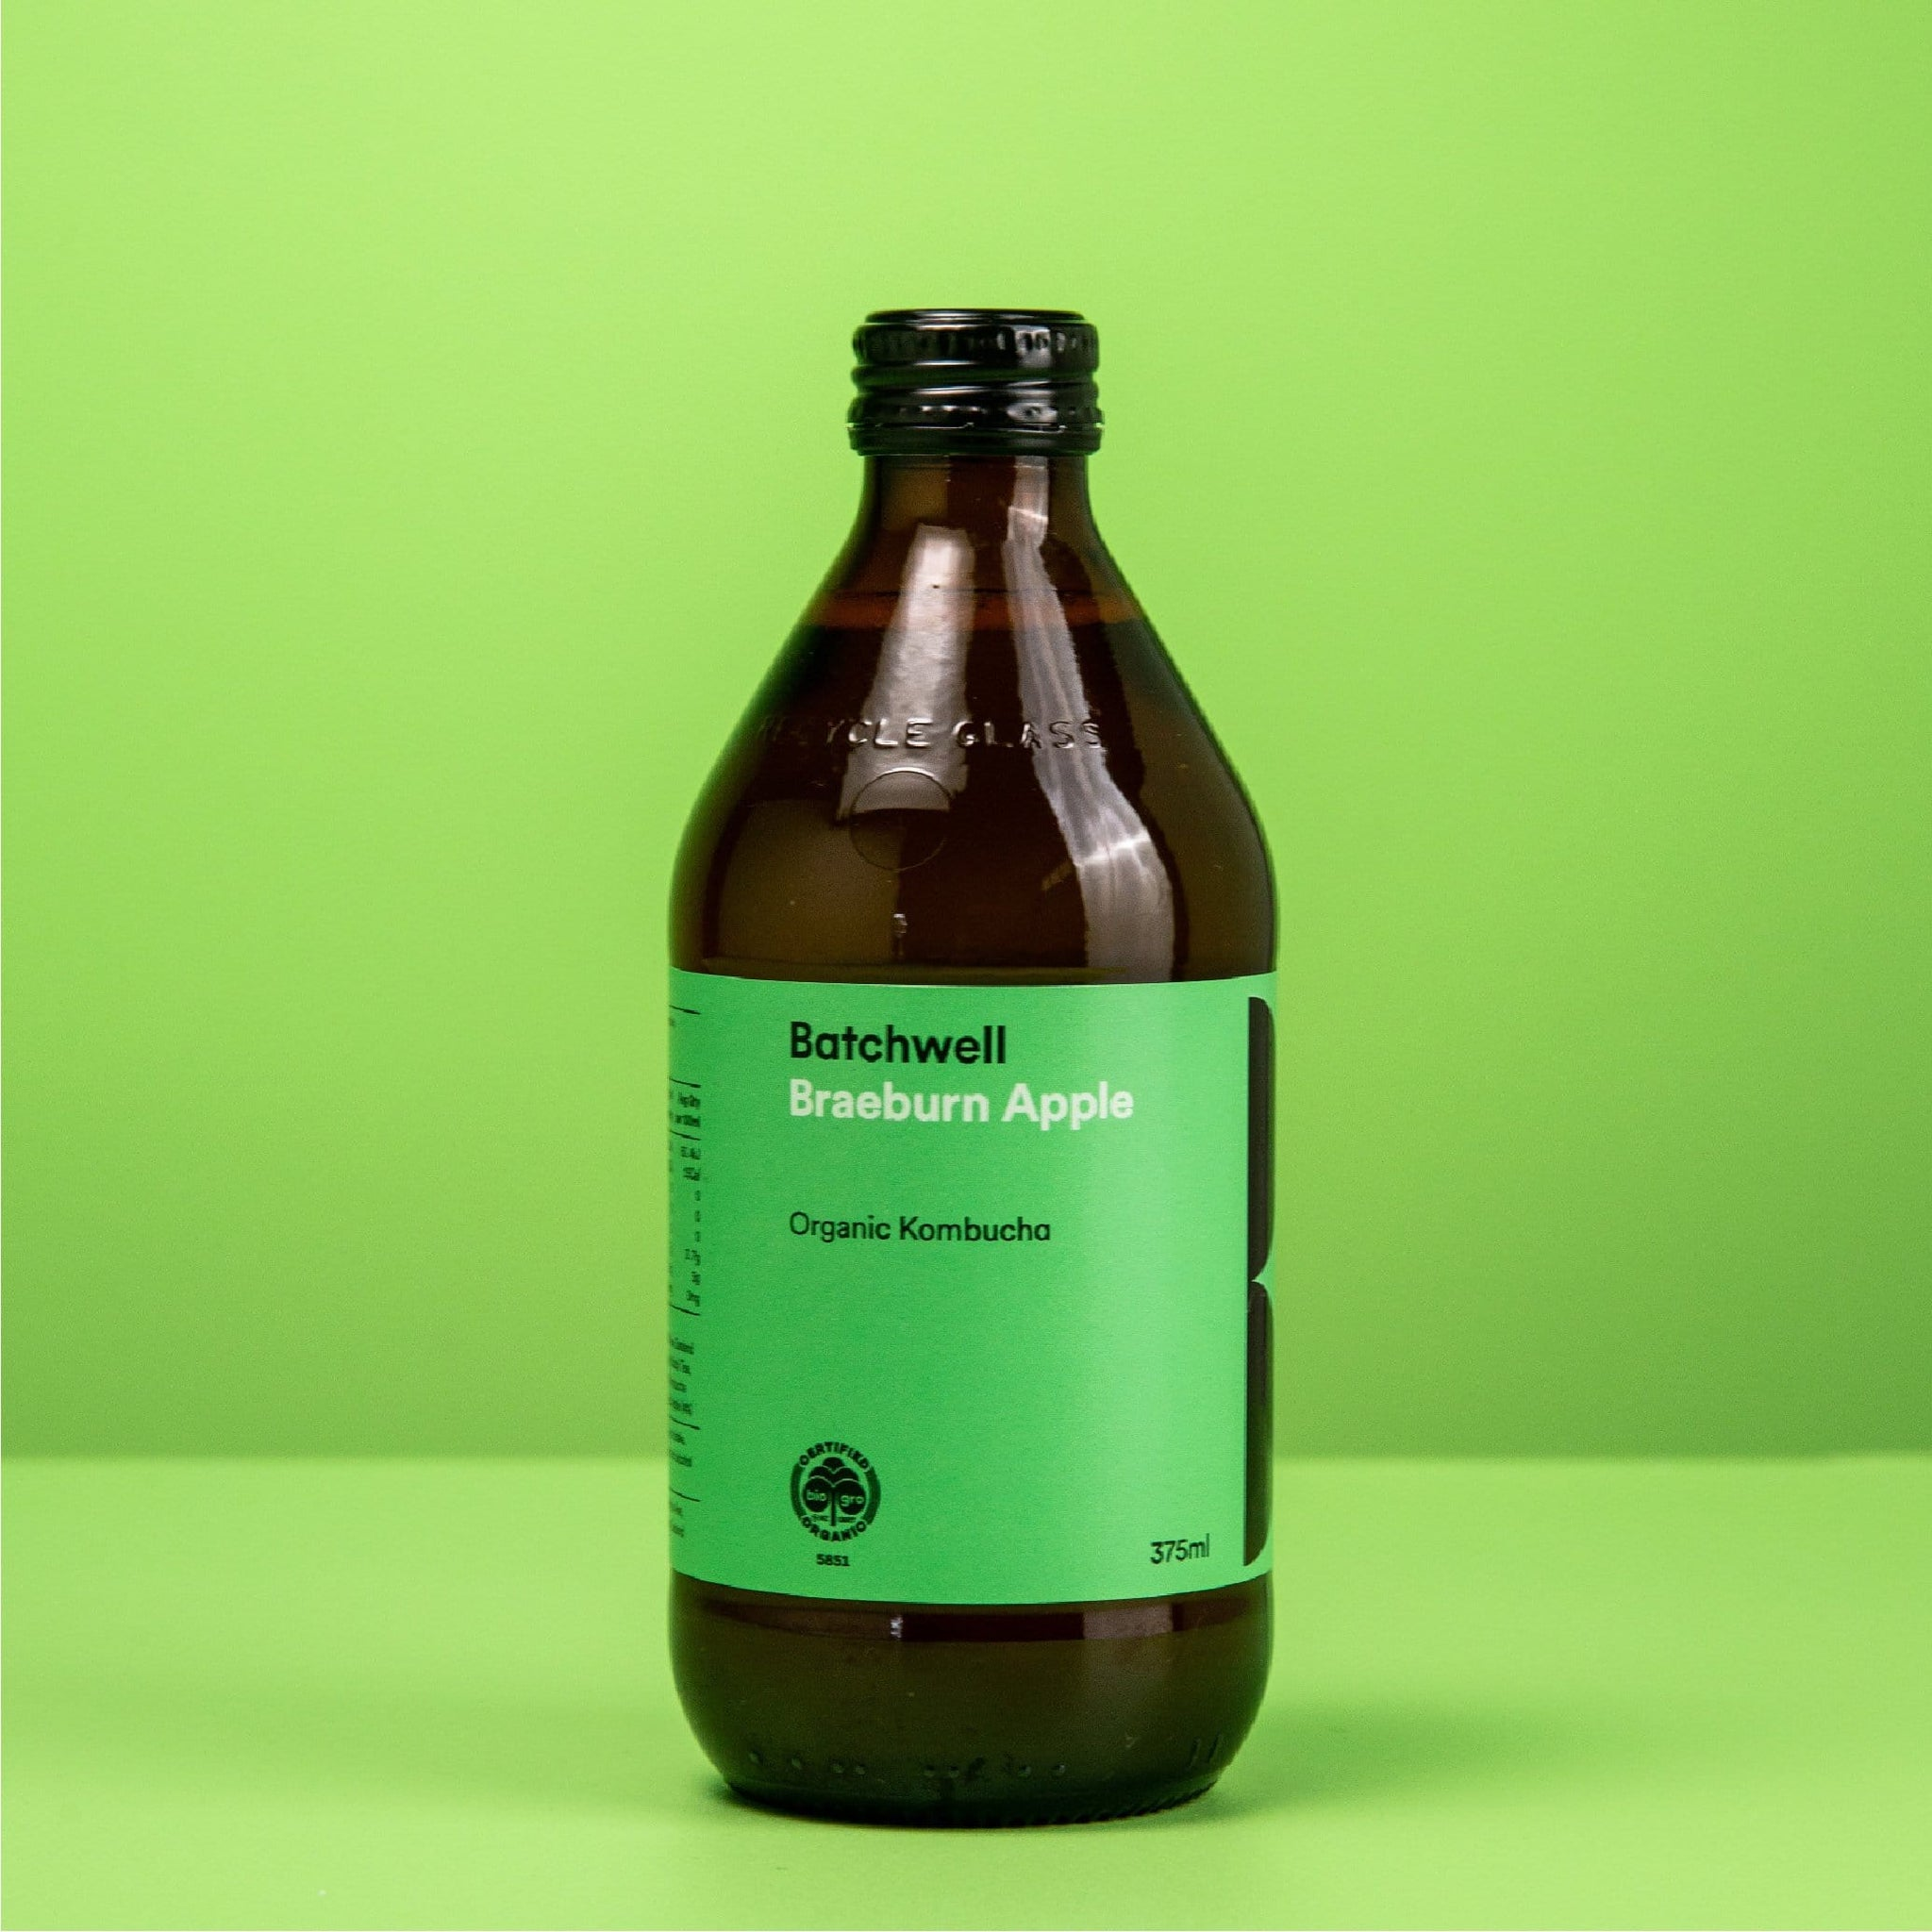 Batchwell Braeburn Apple Kombucha